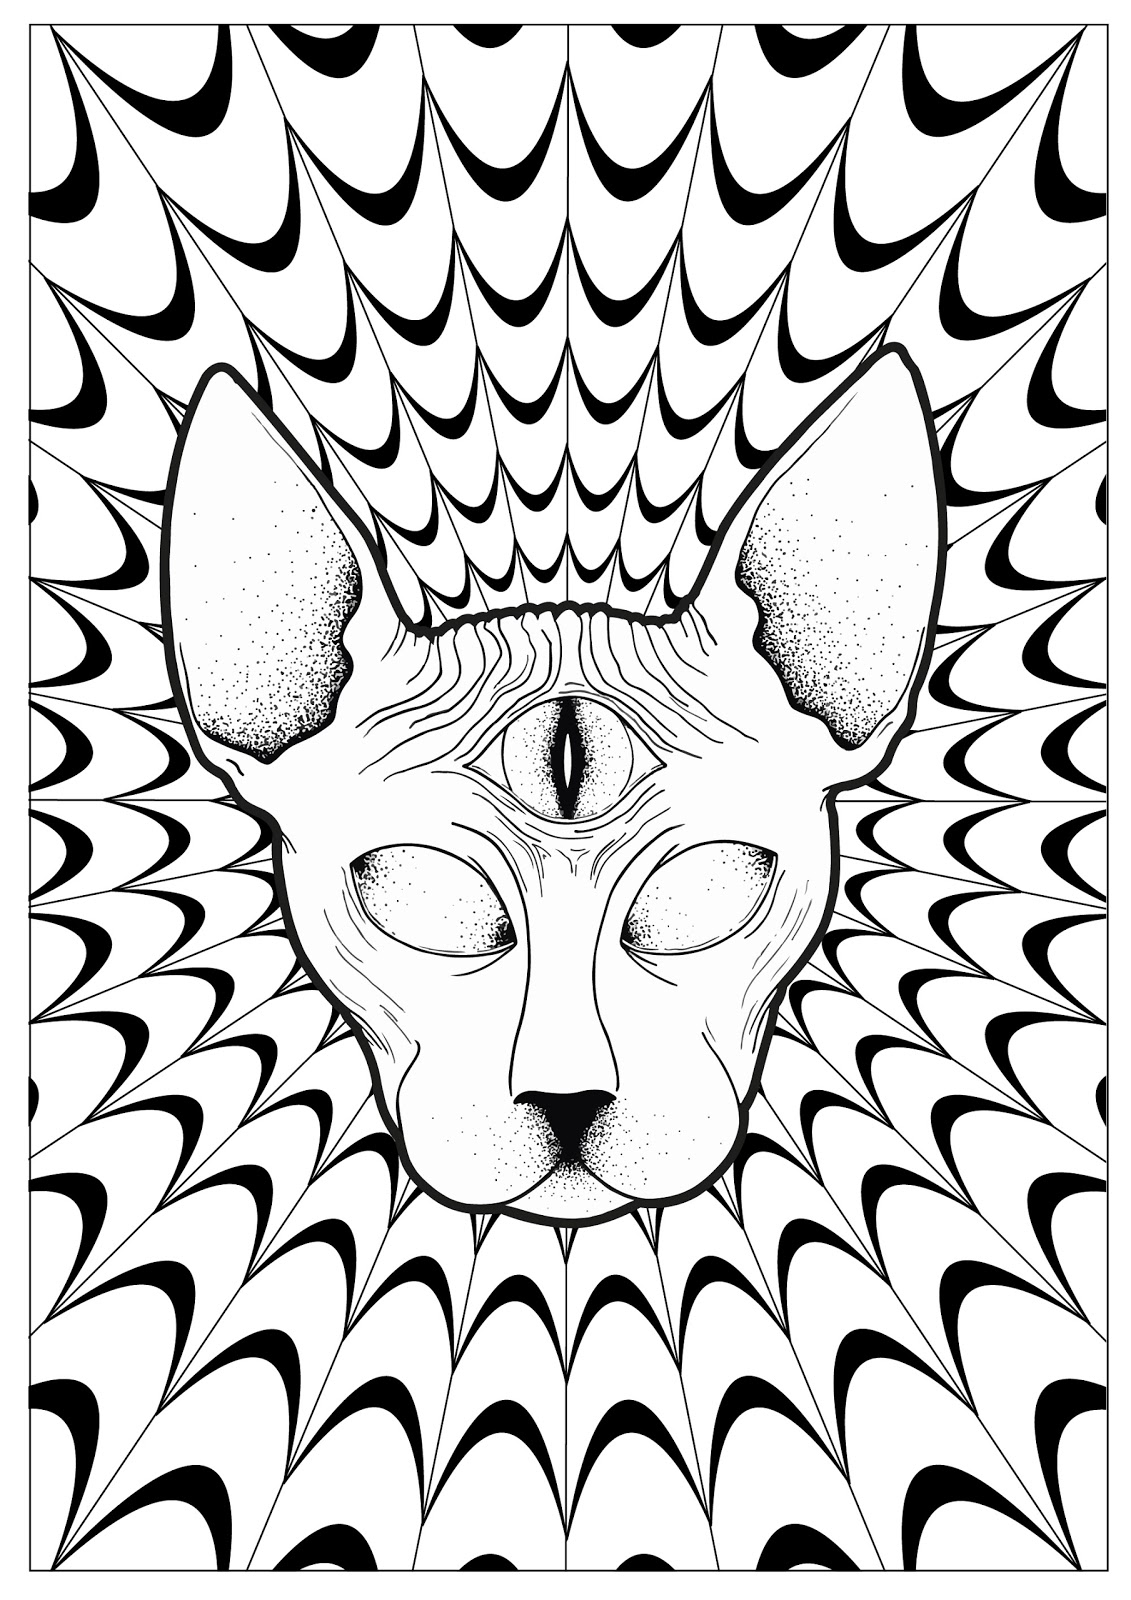 coloring pages for adults hd best 15 psychedelic coloring pages library coloring adults for pages hd coloring